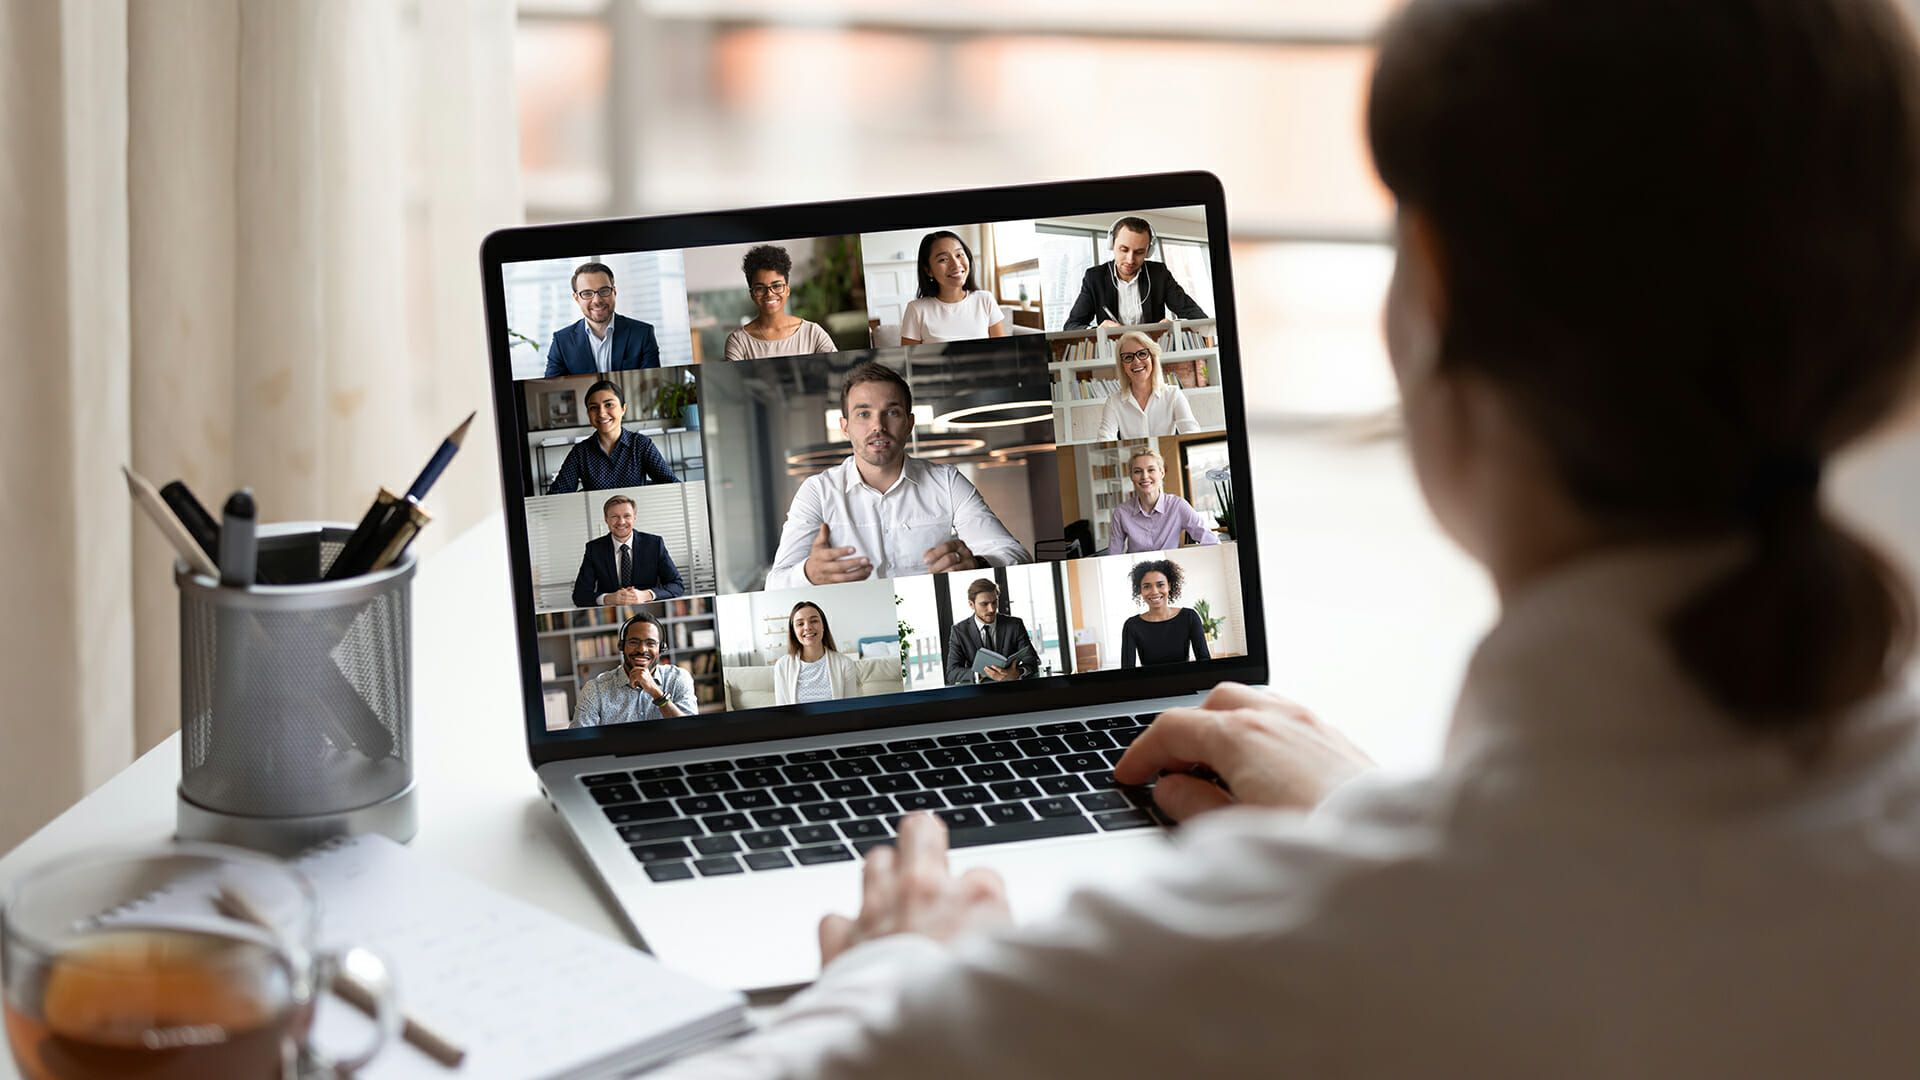 /virtual-corporate-events-and-meetings-as-a-new-trend-in-the-hr-industry-af3c33gm feature image